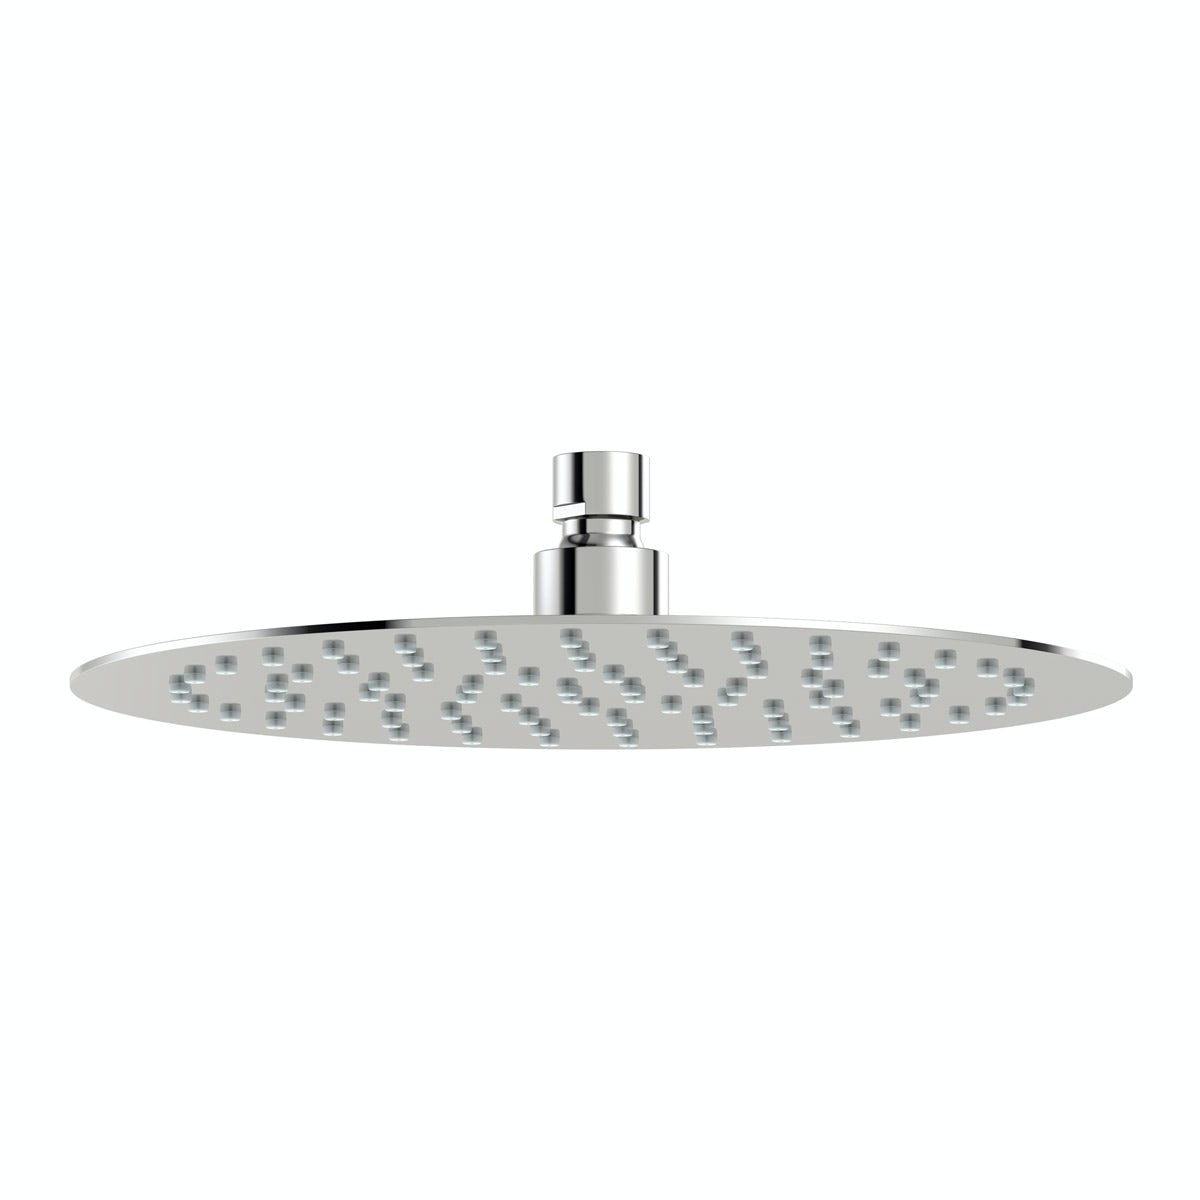 Mode Spa Round Twin Shower Valve With Diverter Wall Shower